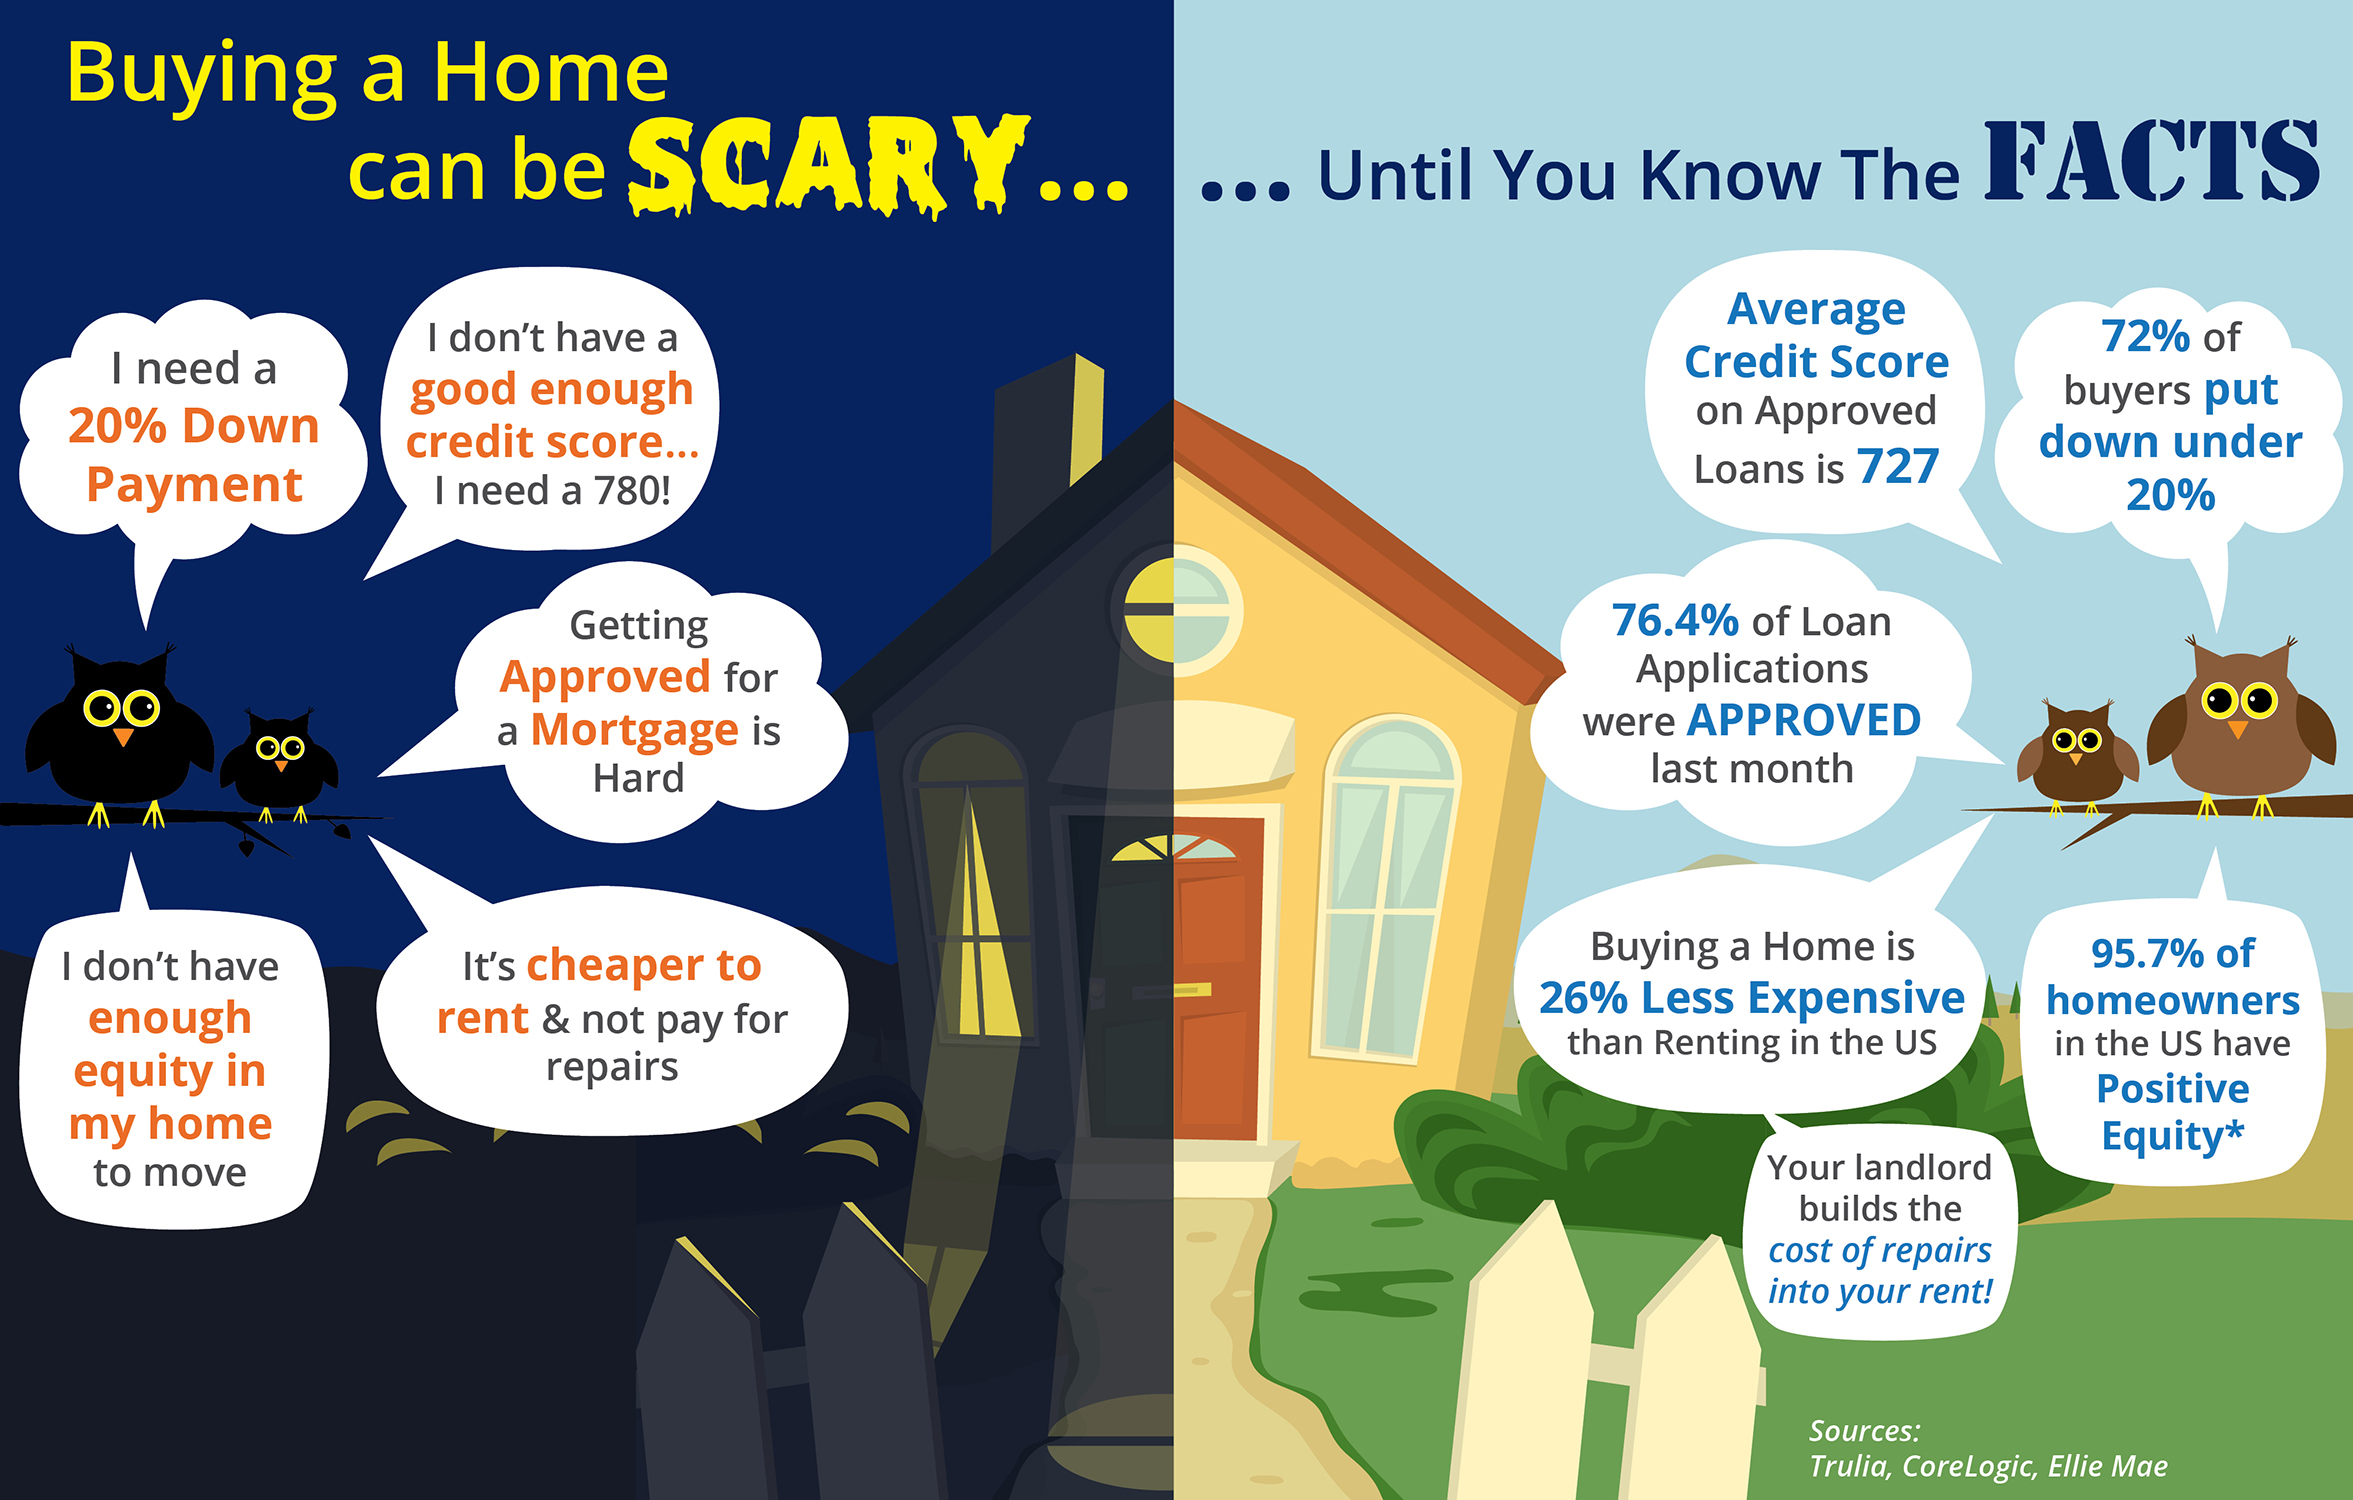 Buying a Home Can Be Scary... Until You Know the Facts  | Simplifying The Market